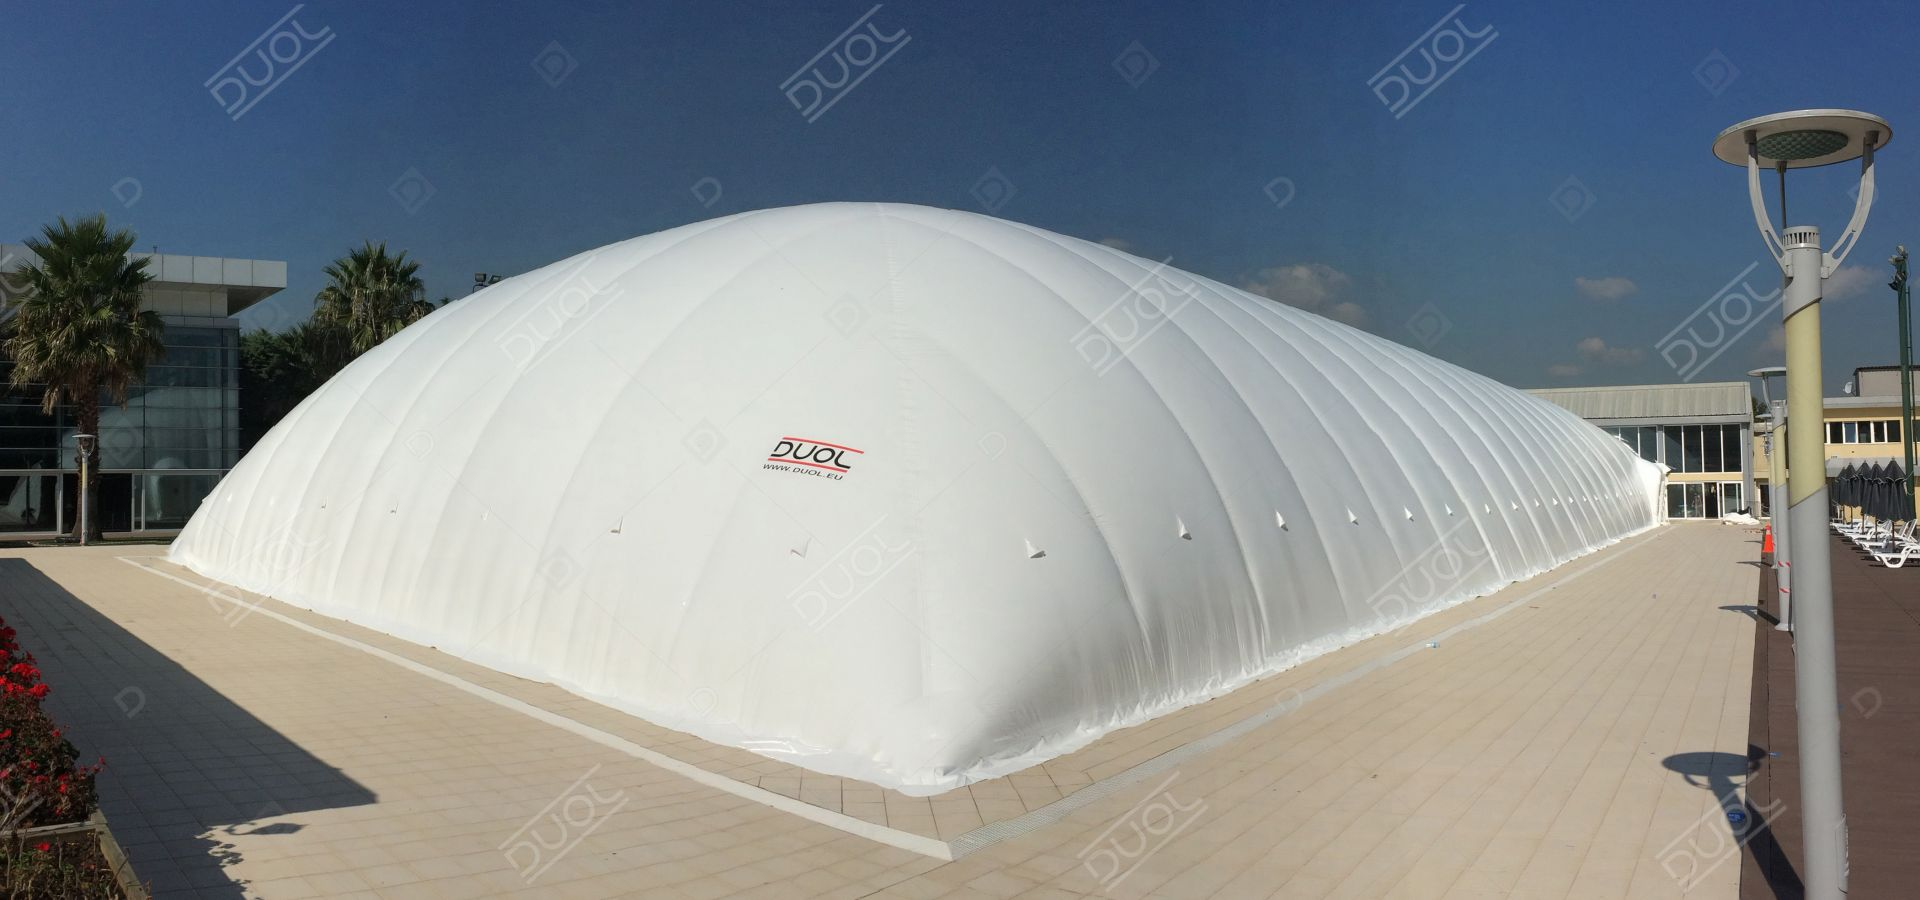 Swimming pool enclosures & domes